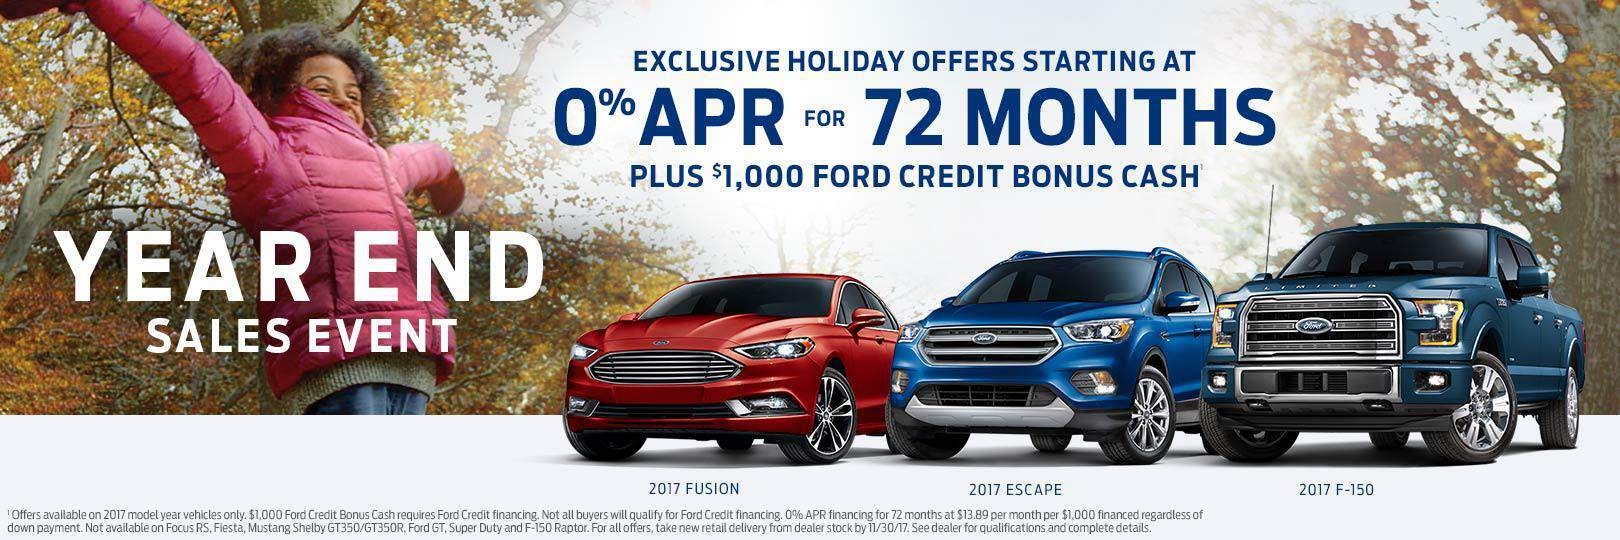 Ford Year End Savings